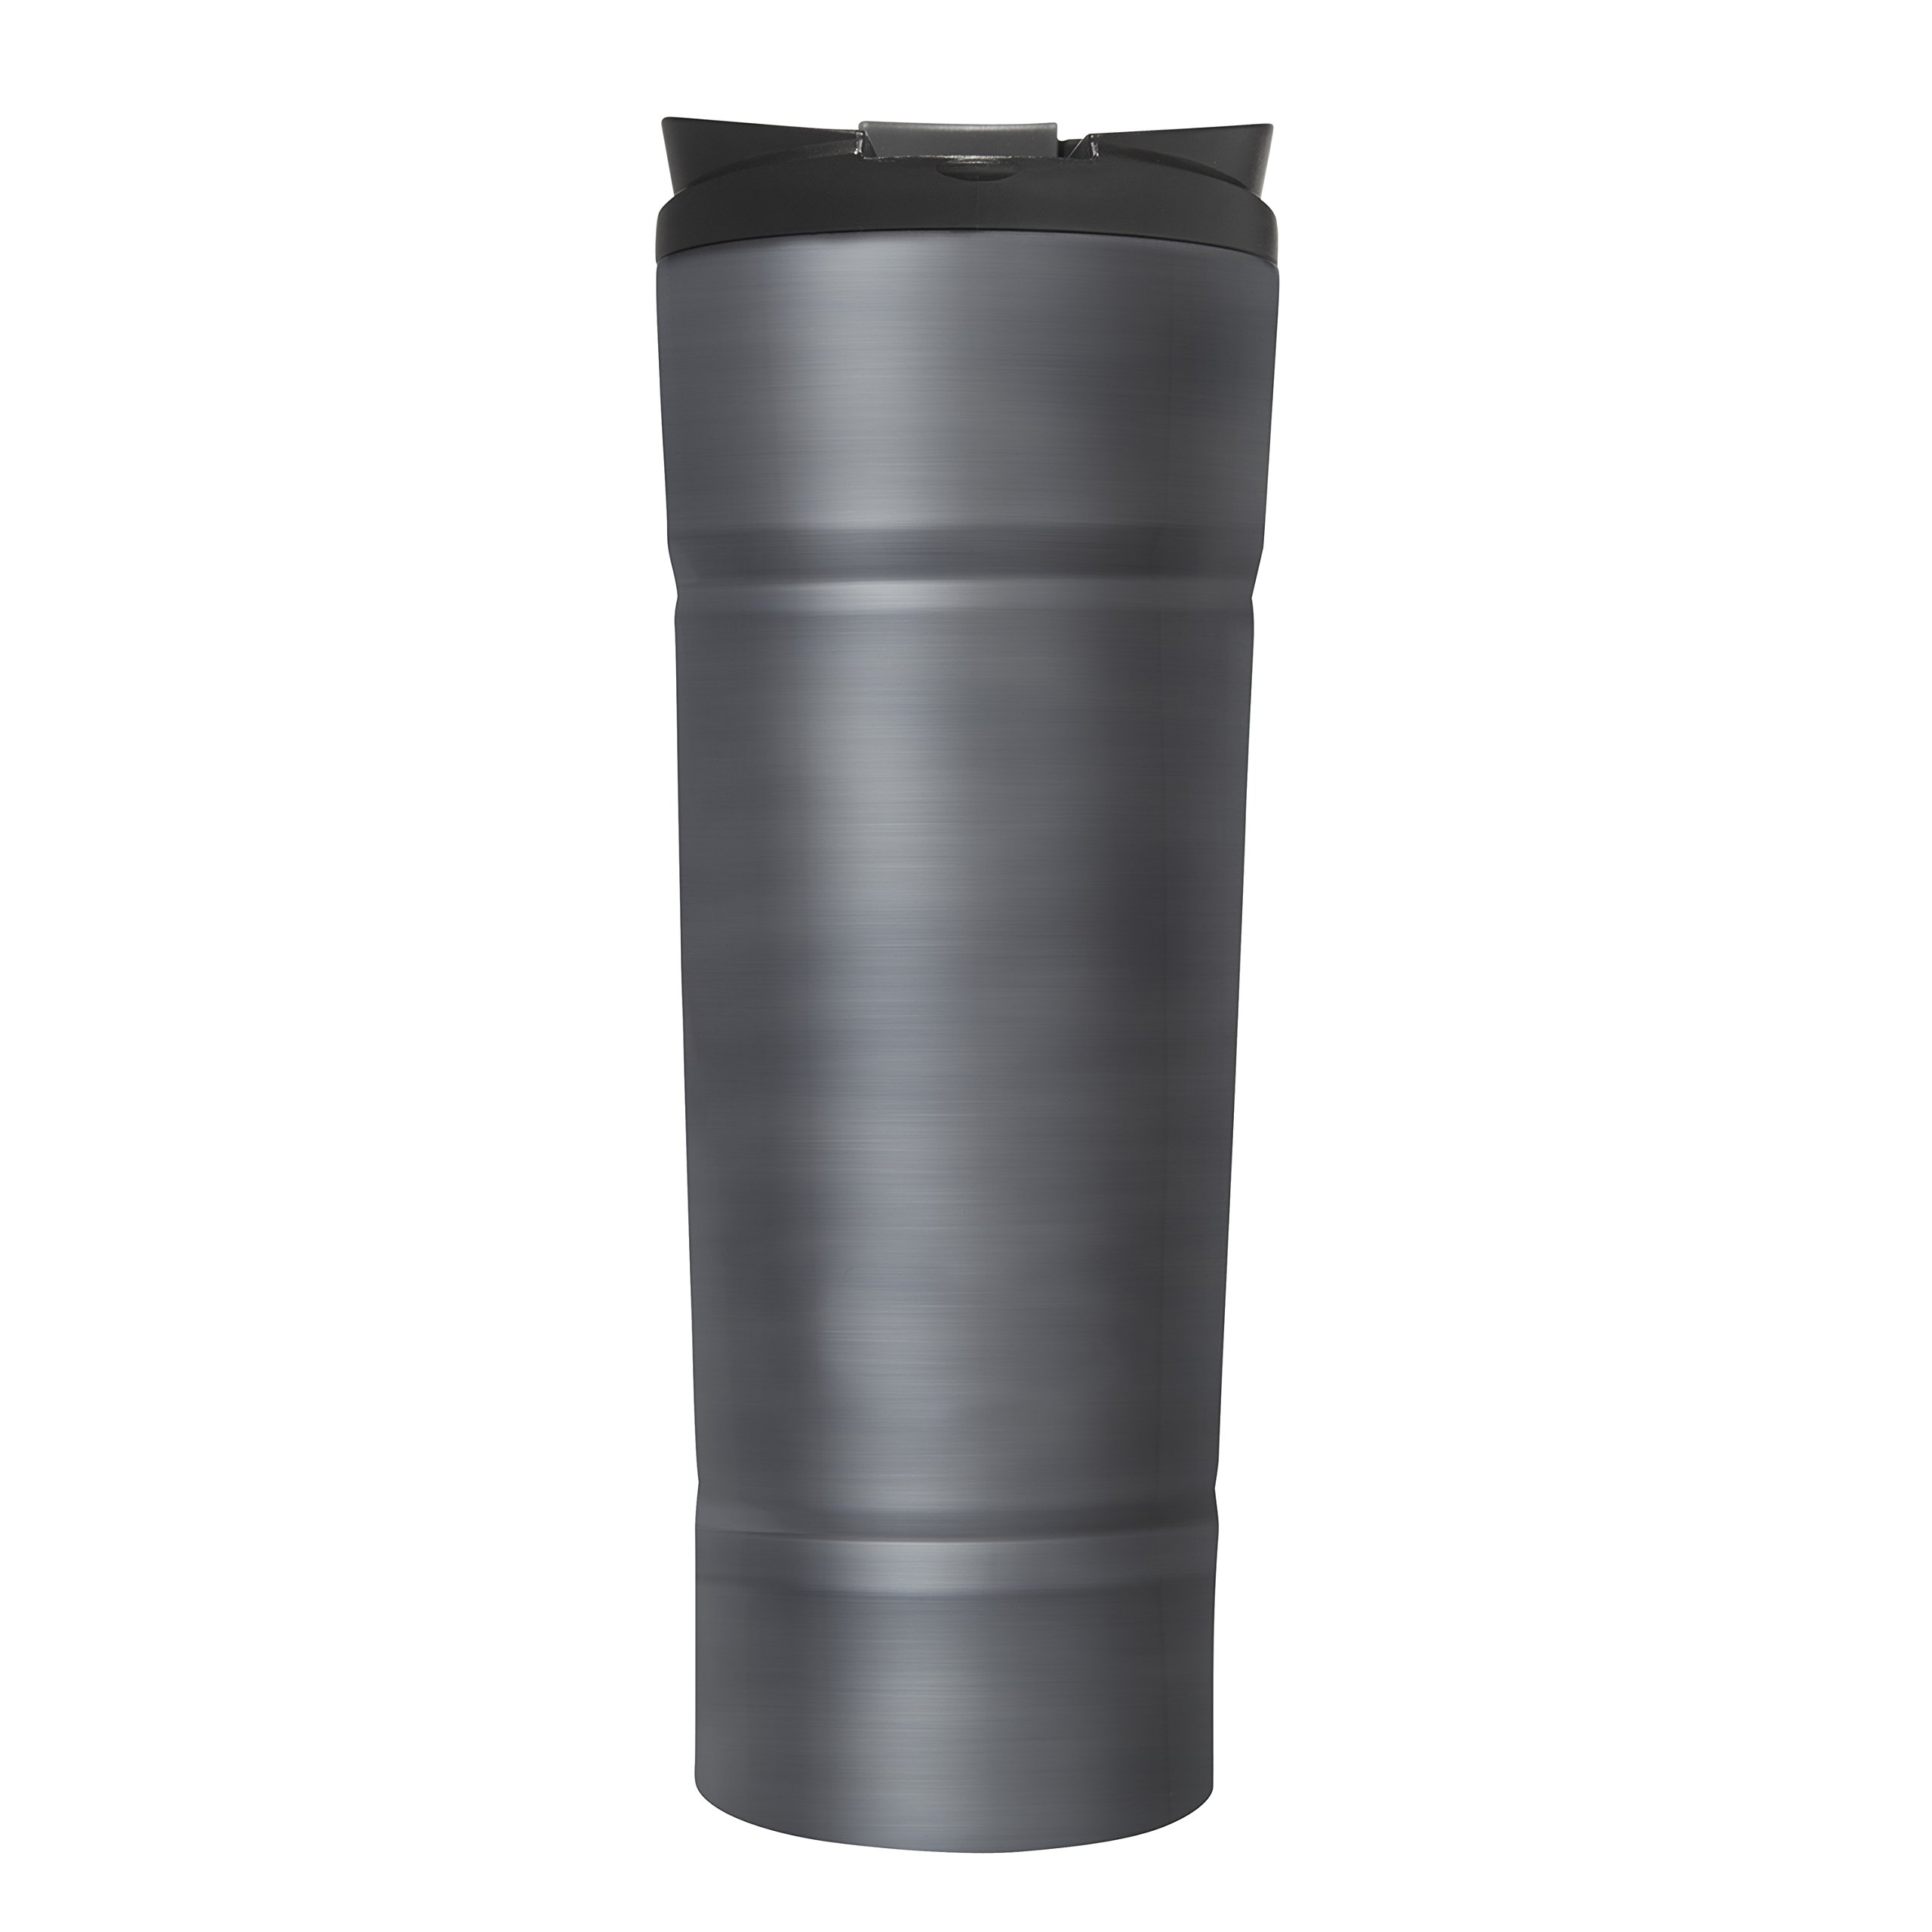 Bubba HT Vacuum-Insulated Stainless Steel Travel Mug, 20 oz, Smoke by BUBBA BRANDS (Image #7)